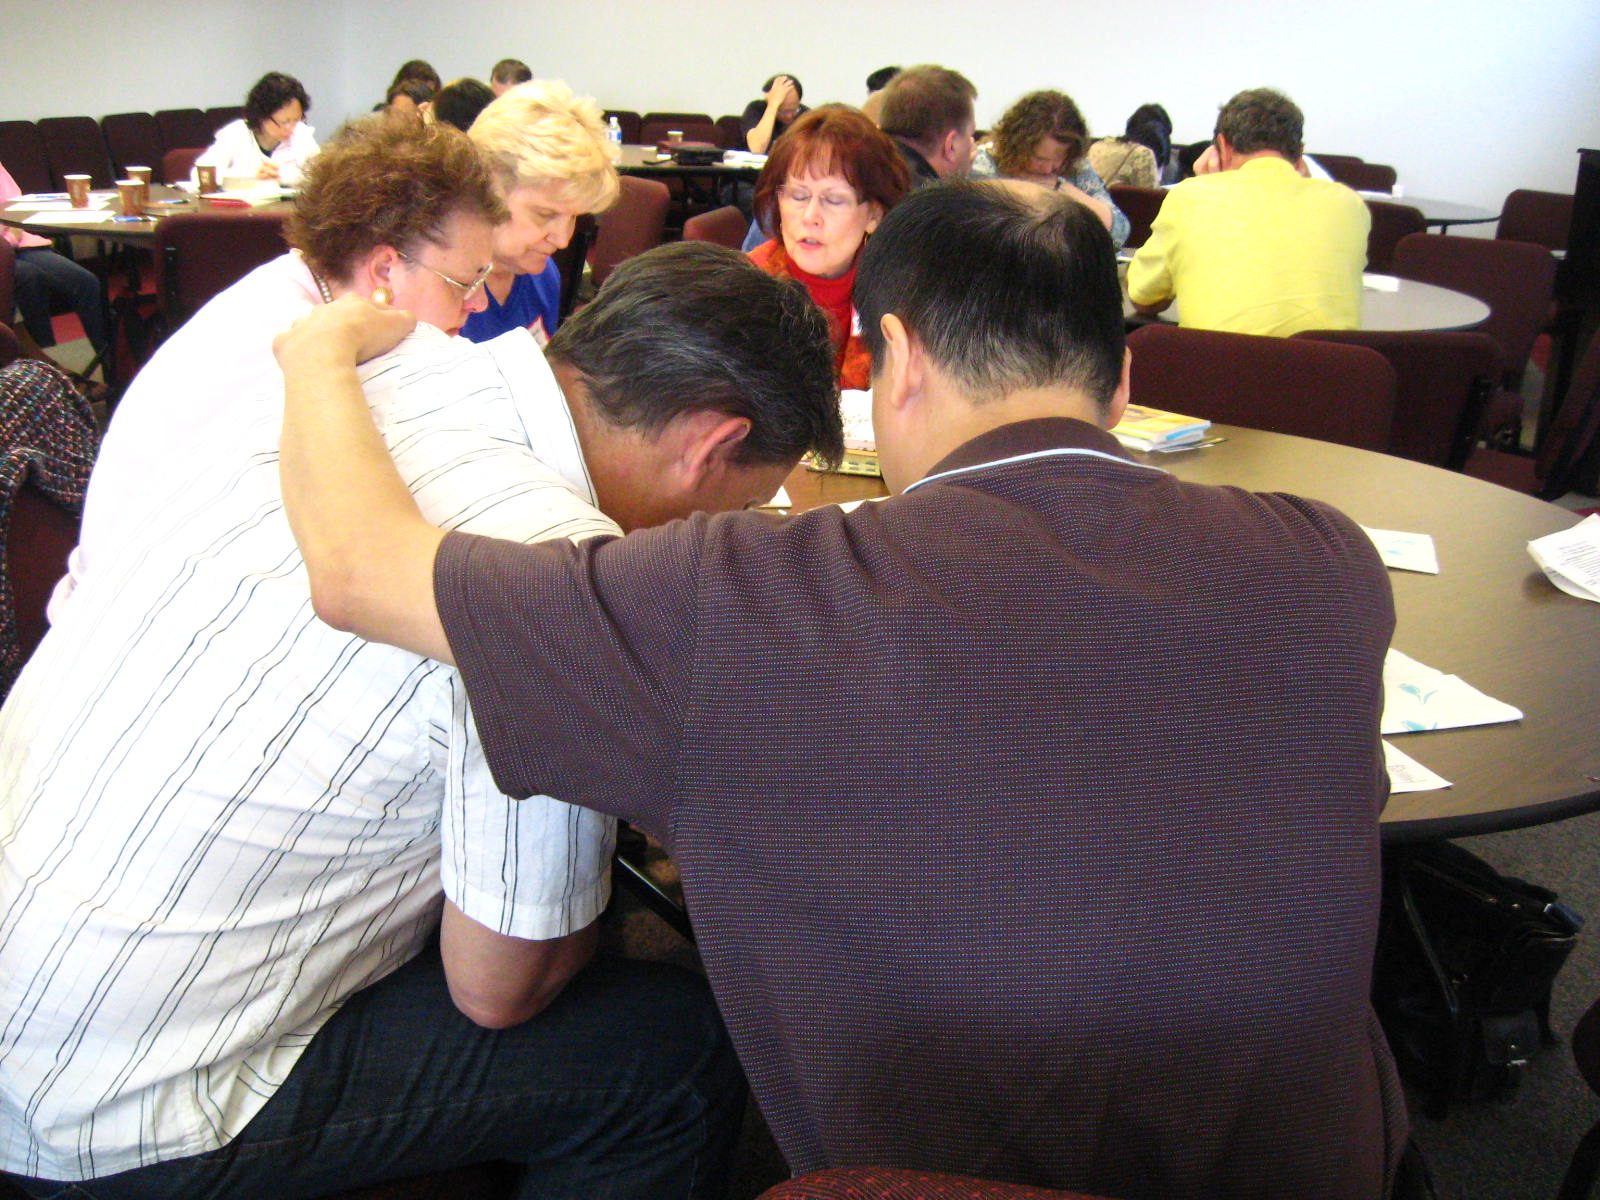 EXPANSIVE - We multiply prayer leaders so that their ministries become a house of prayer for all nations. Our training resources are transferable and systemic, providing prayer leadership principles to grow every ministry to become a praying culture that expands Christ's kingdom.